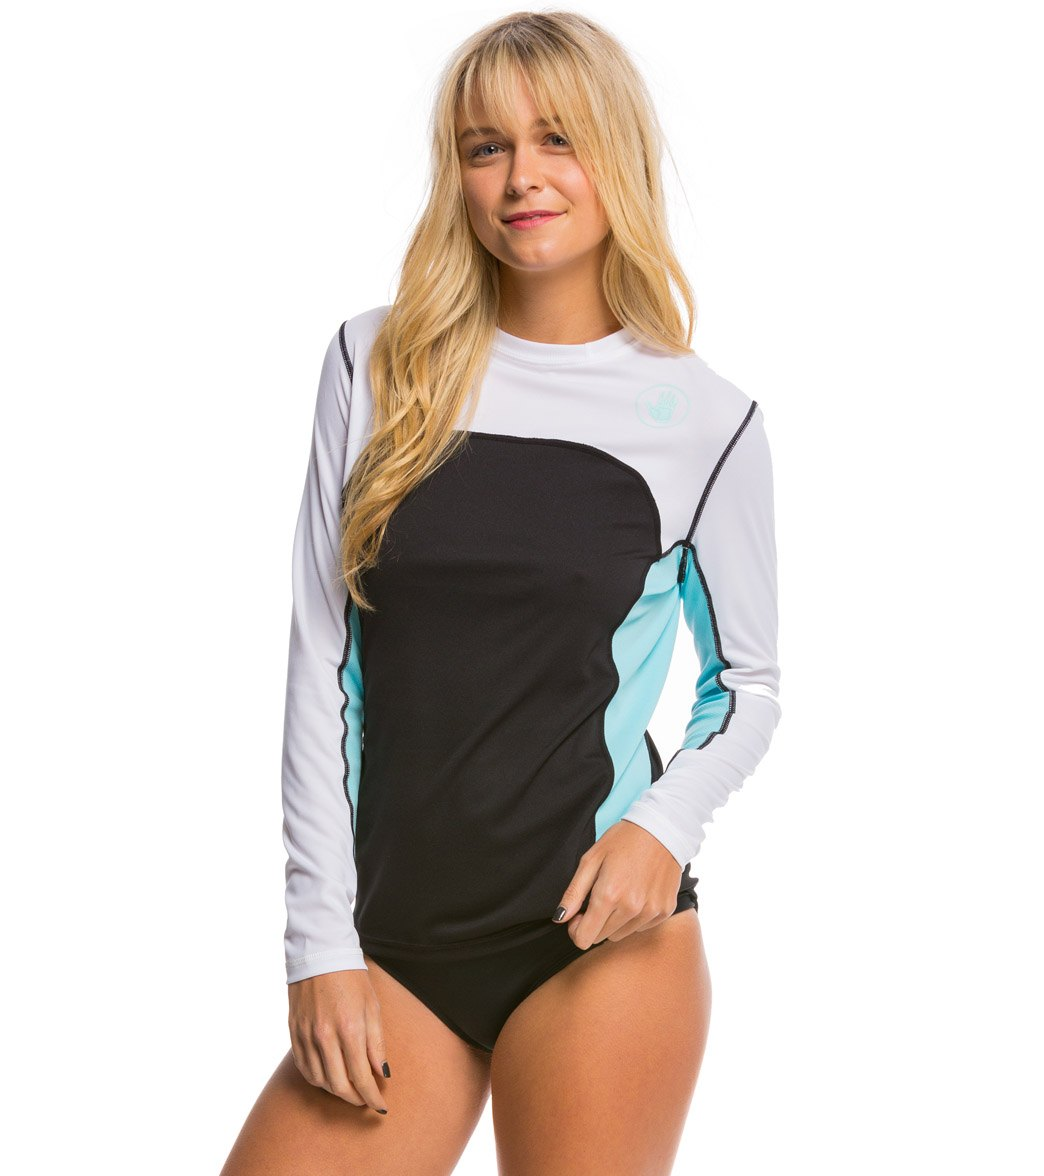 Body Glove Women s Performance Loose Fit Long Sleeve Surf Shirt at ... 70a454a63